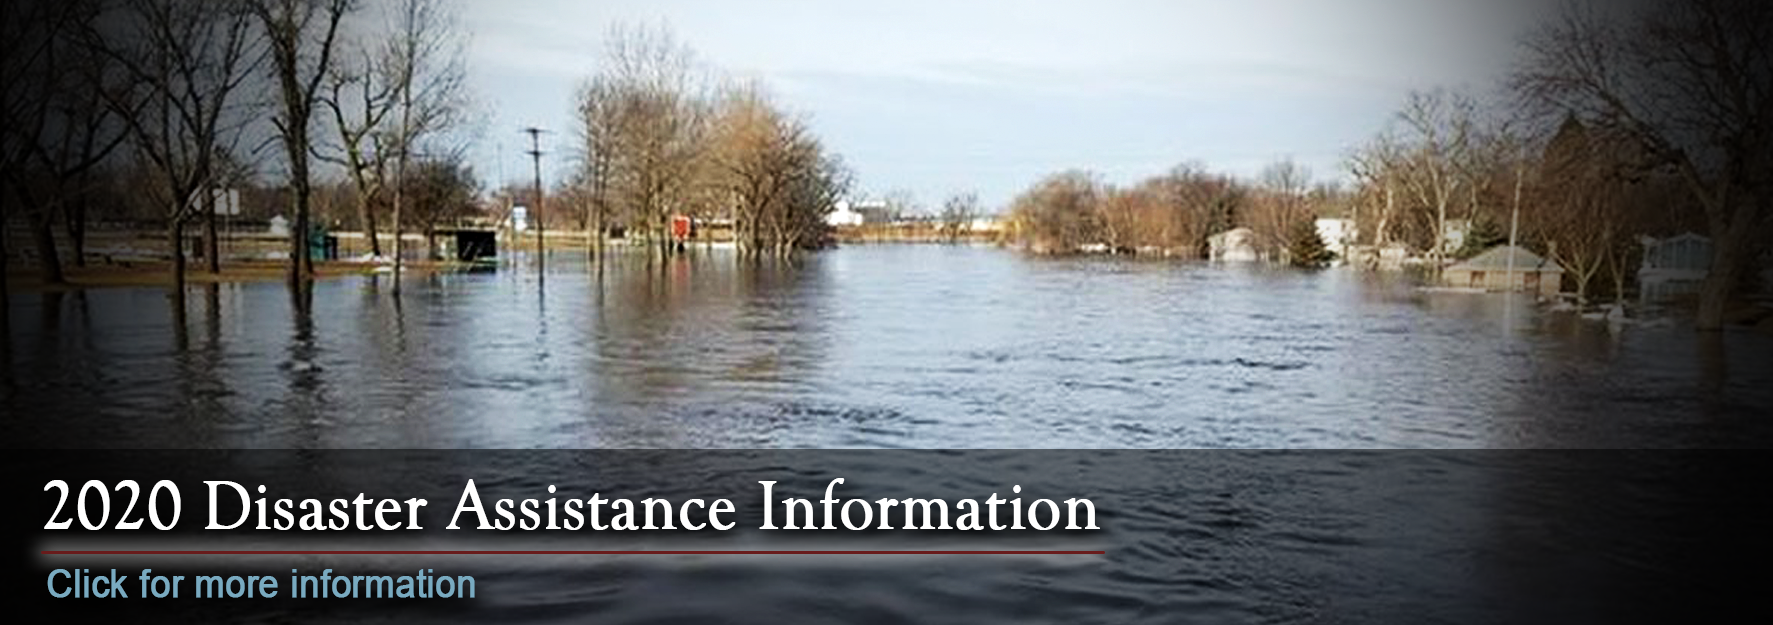 2020 Disaster Assistance Information